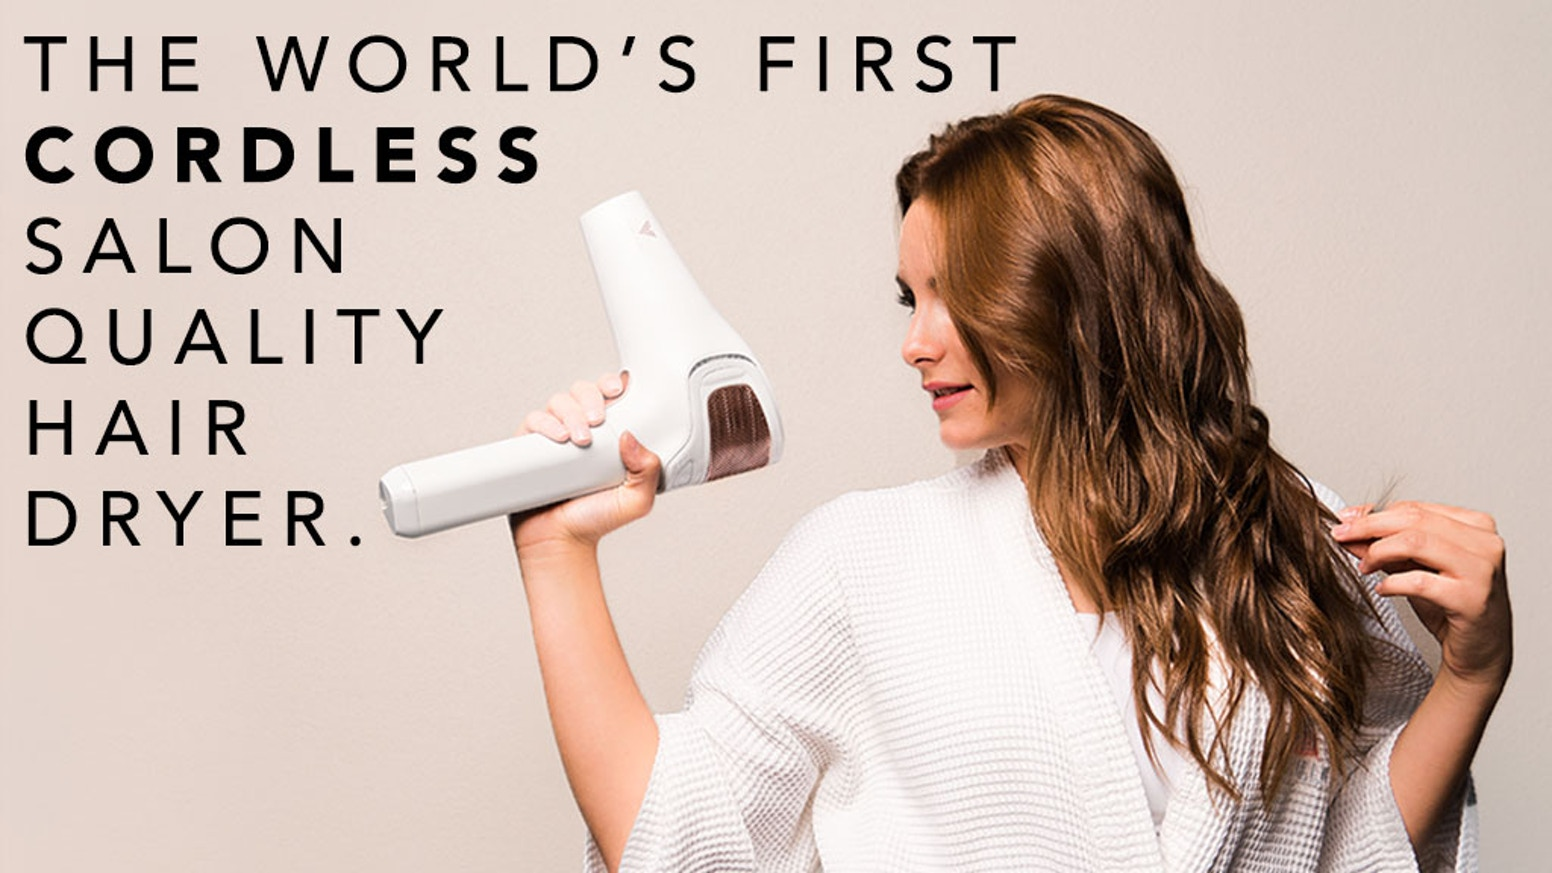 The VOLO Go CORDLESS Hair Dryer. Using healthy infrared heat and lithium-ion batteries, the Go is as effective as a salon hair dryer! If you would still like to pre-order, please click on the button below: